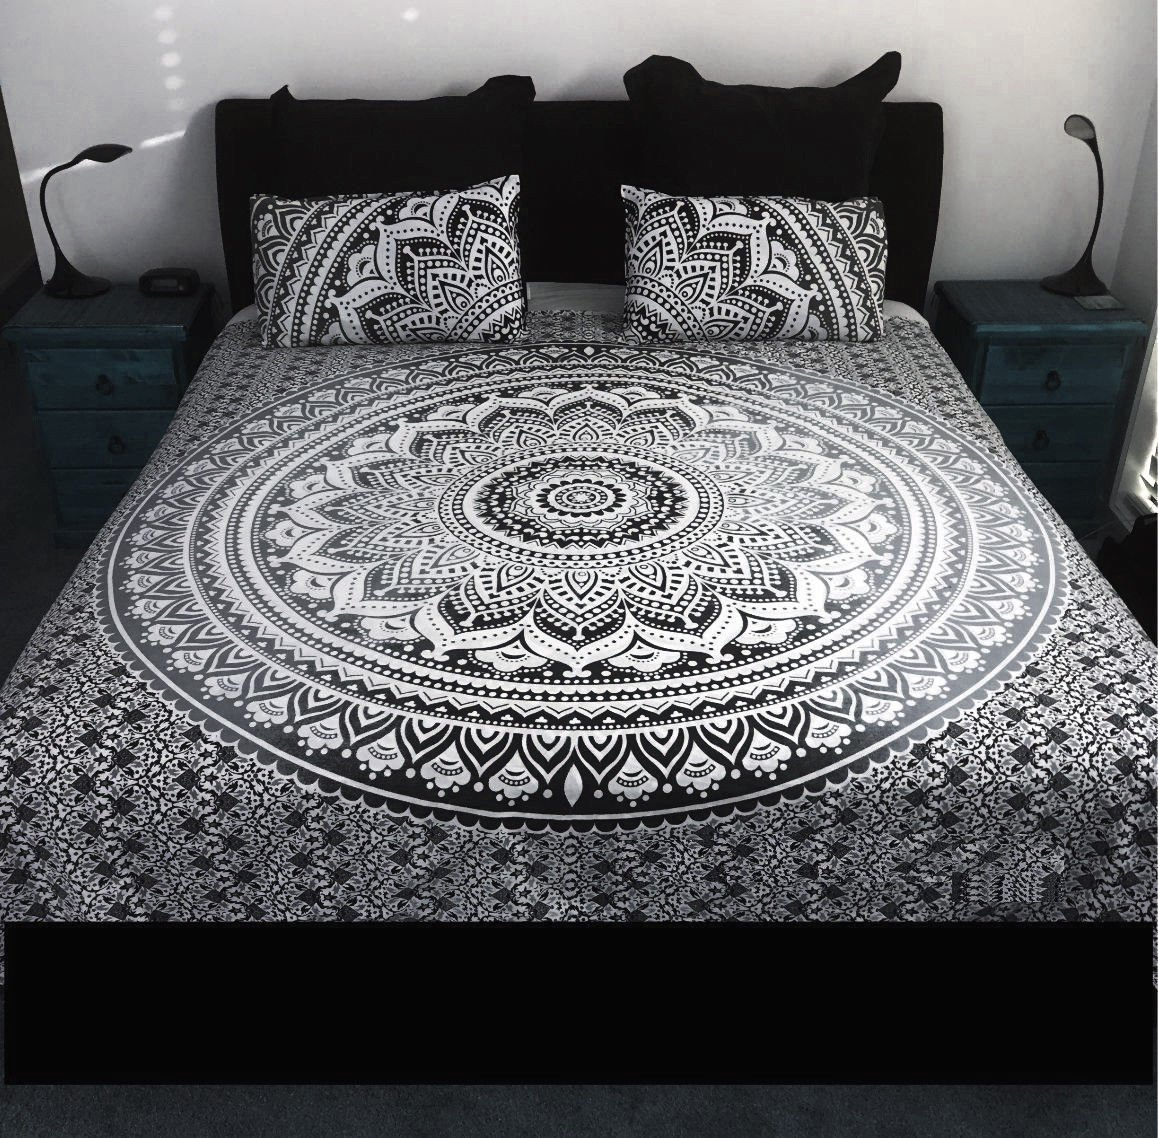 Sophia Art Exclusive Indian Bohemain Full Size Ombre Mandala Tapestry/Wall Hanging Bedding Duvet Quilt Cover with Pilow Duvet Set (Grey&Black)